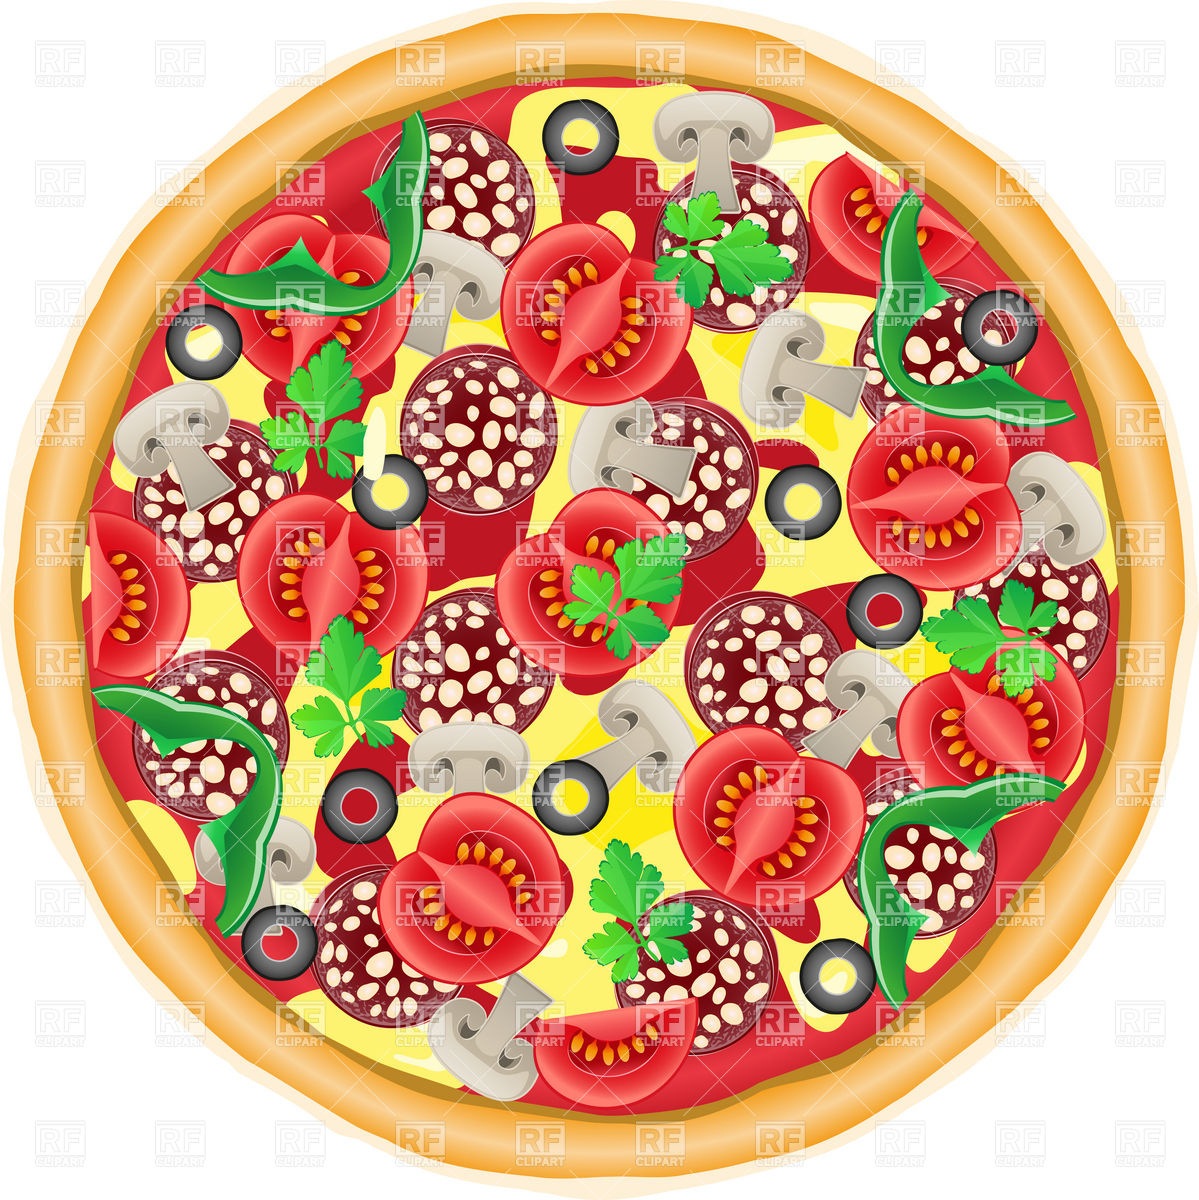 1199x1200 Whole Pie Pizza Top View Vector Image Vector Artwork Of Food And